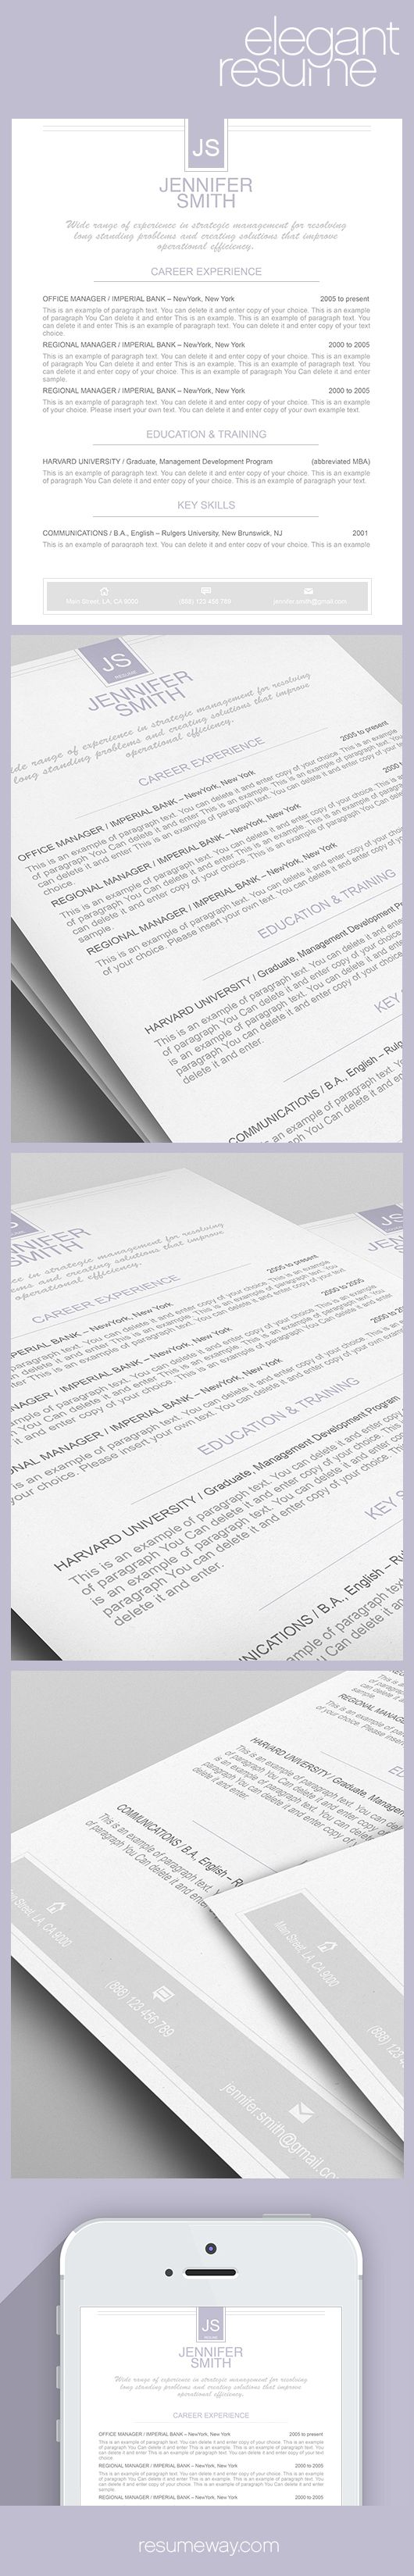 best ideas about cover letter design resume elegant resume template 110460 premium line of resume cover letter templates easy edit